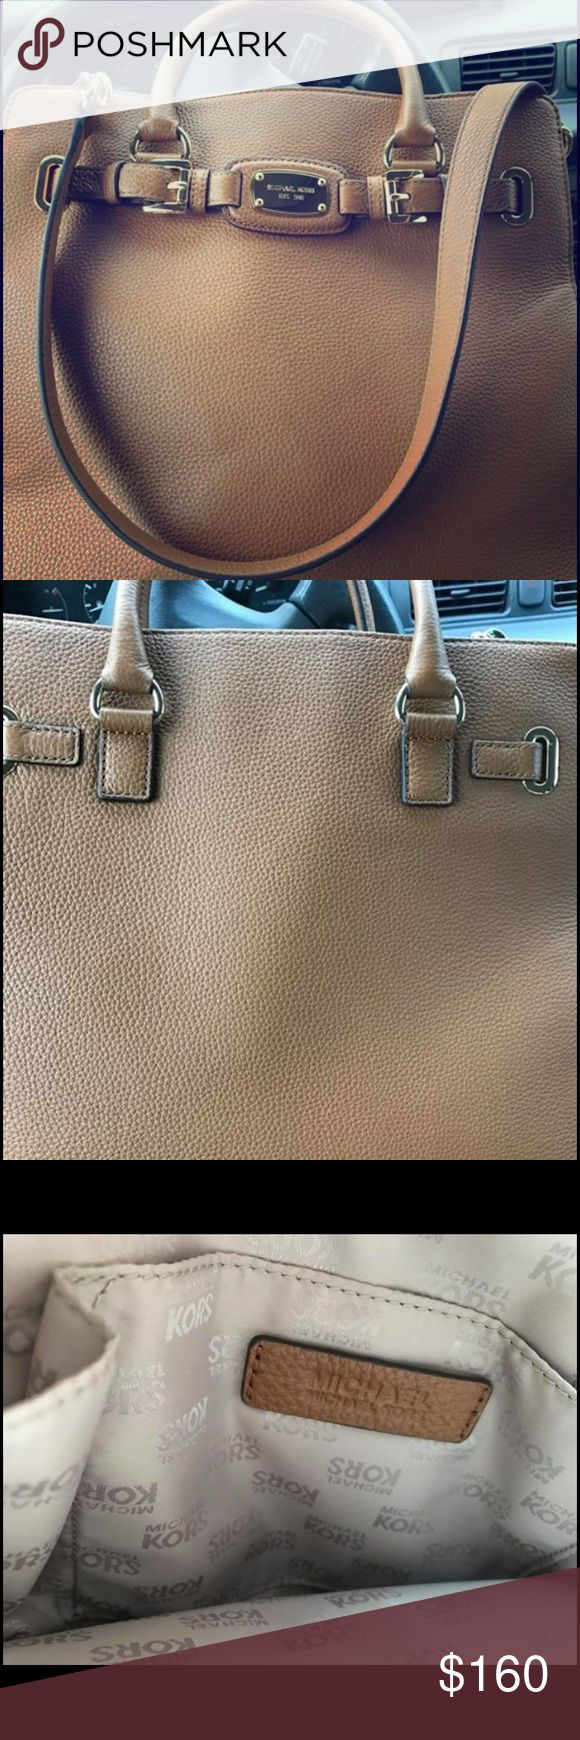 Large Brown Michael Kors Purse New used only 1 time... too big for me... no rips watermarks or tears... came from Michael Kors store... will show receipt to serious inquiries only! Michael Kors Bags Totes